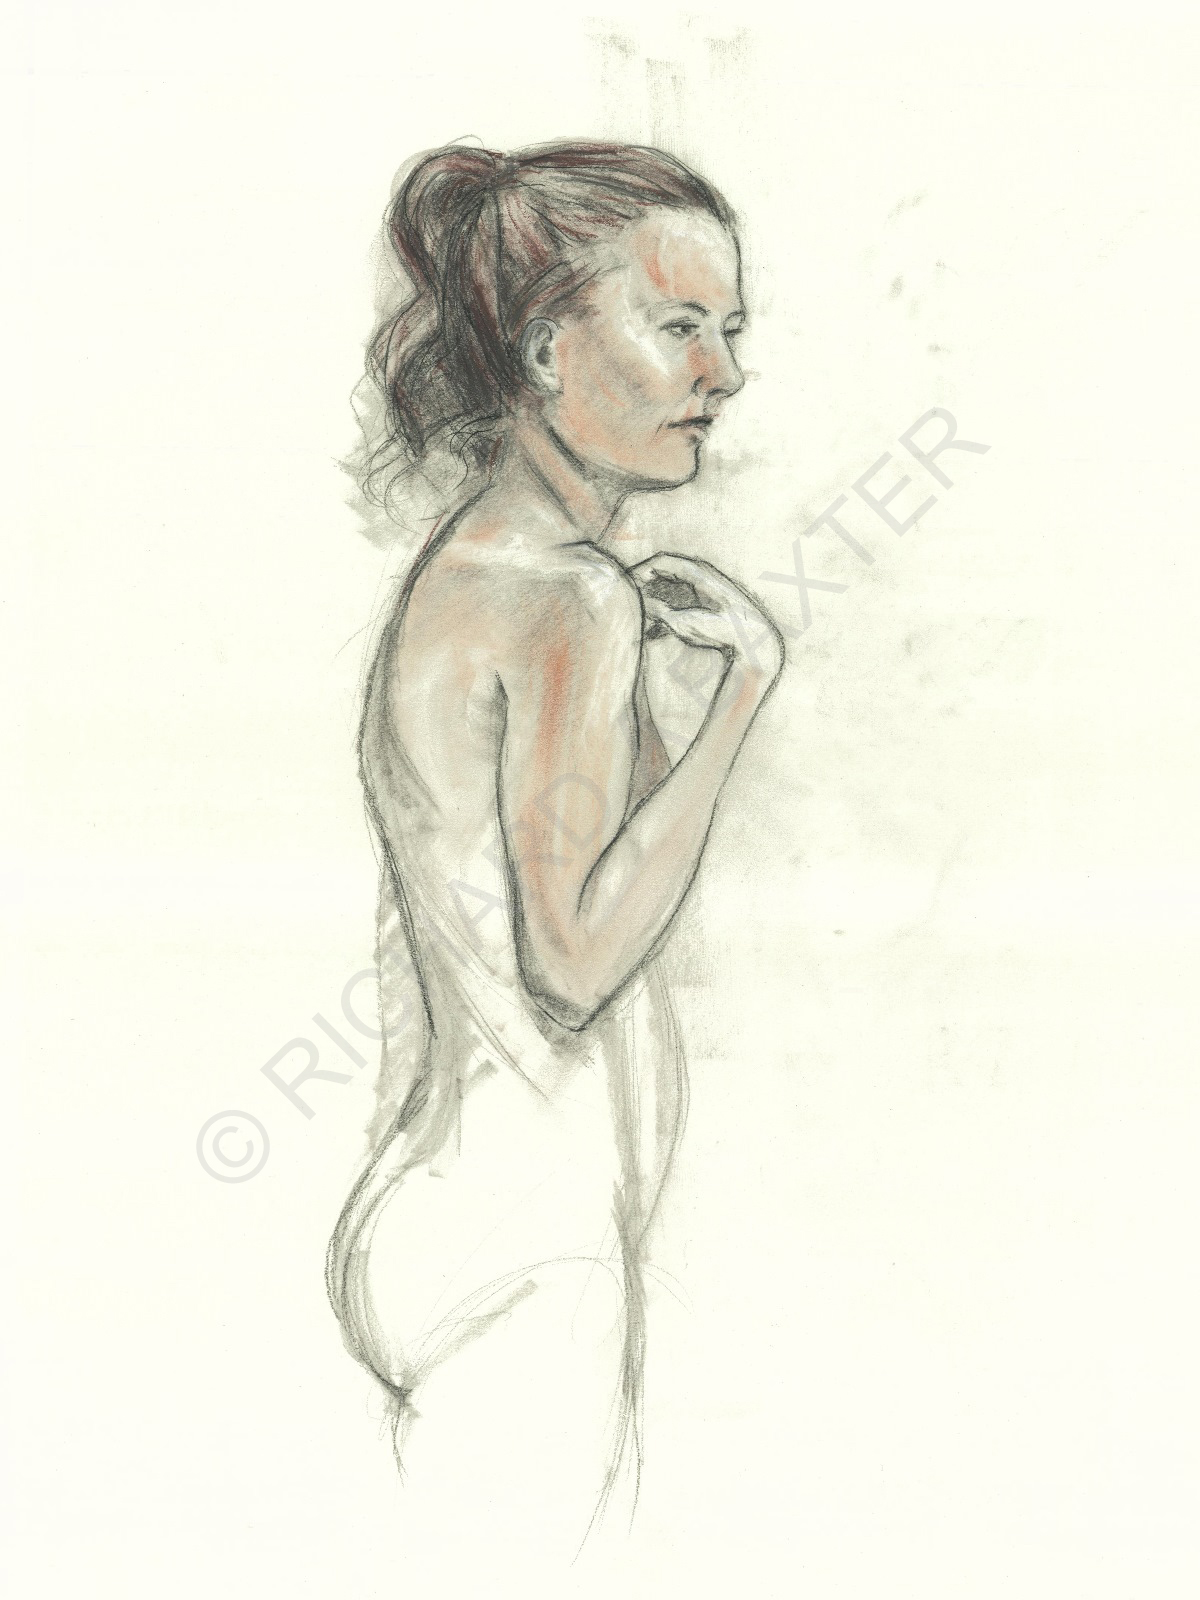 Figure drawing by Dr. Baxter